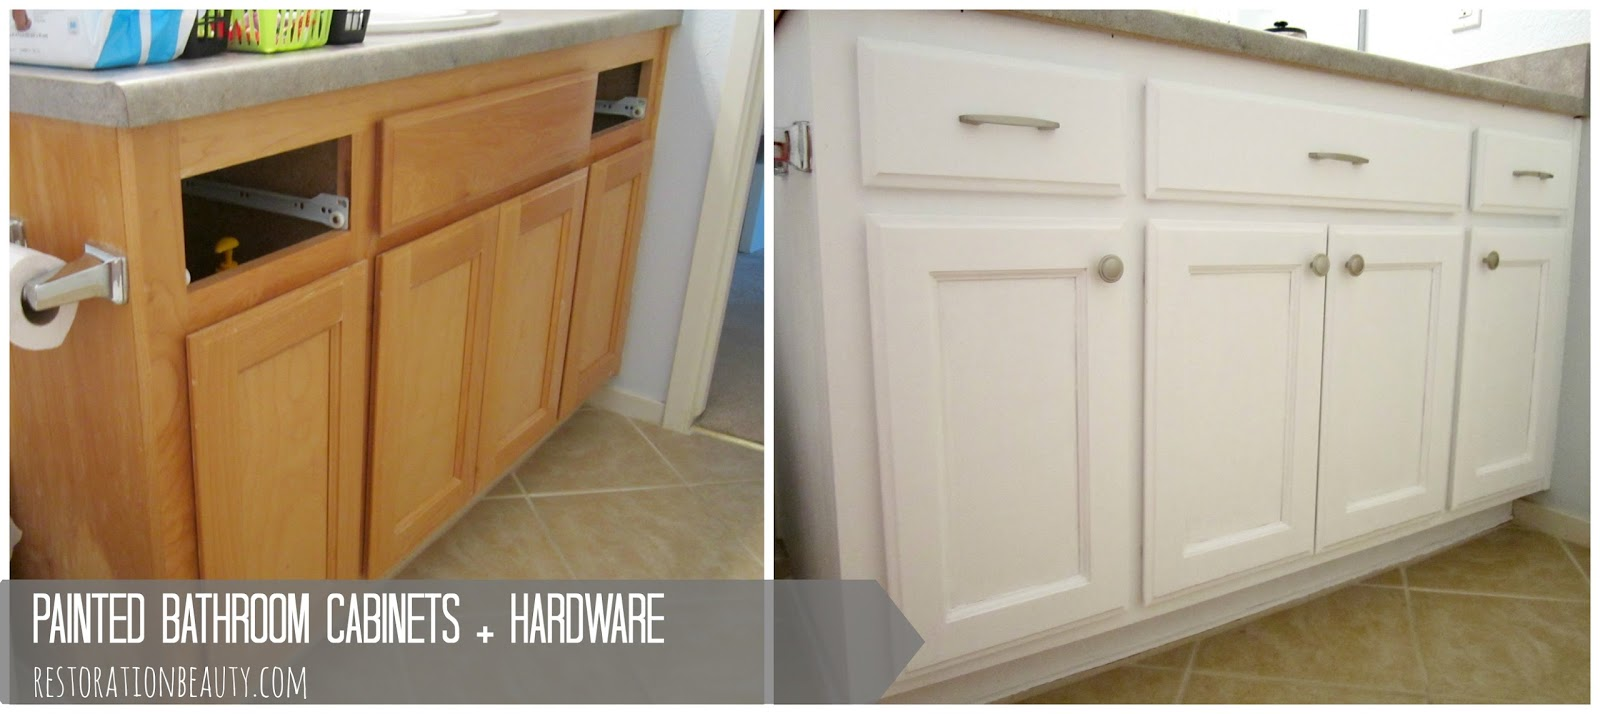 Painted Bathroom Cabinets + Hardware